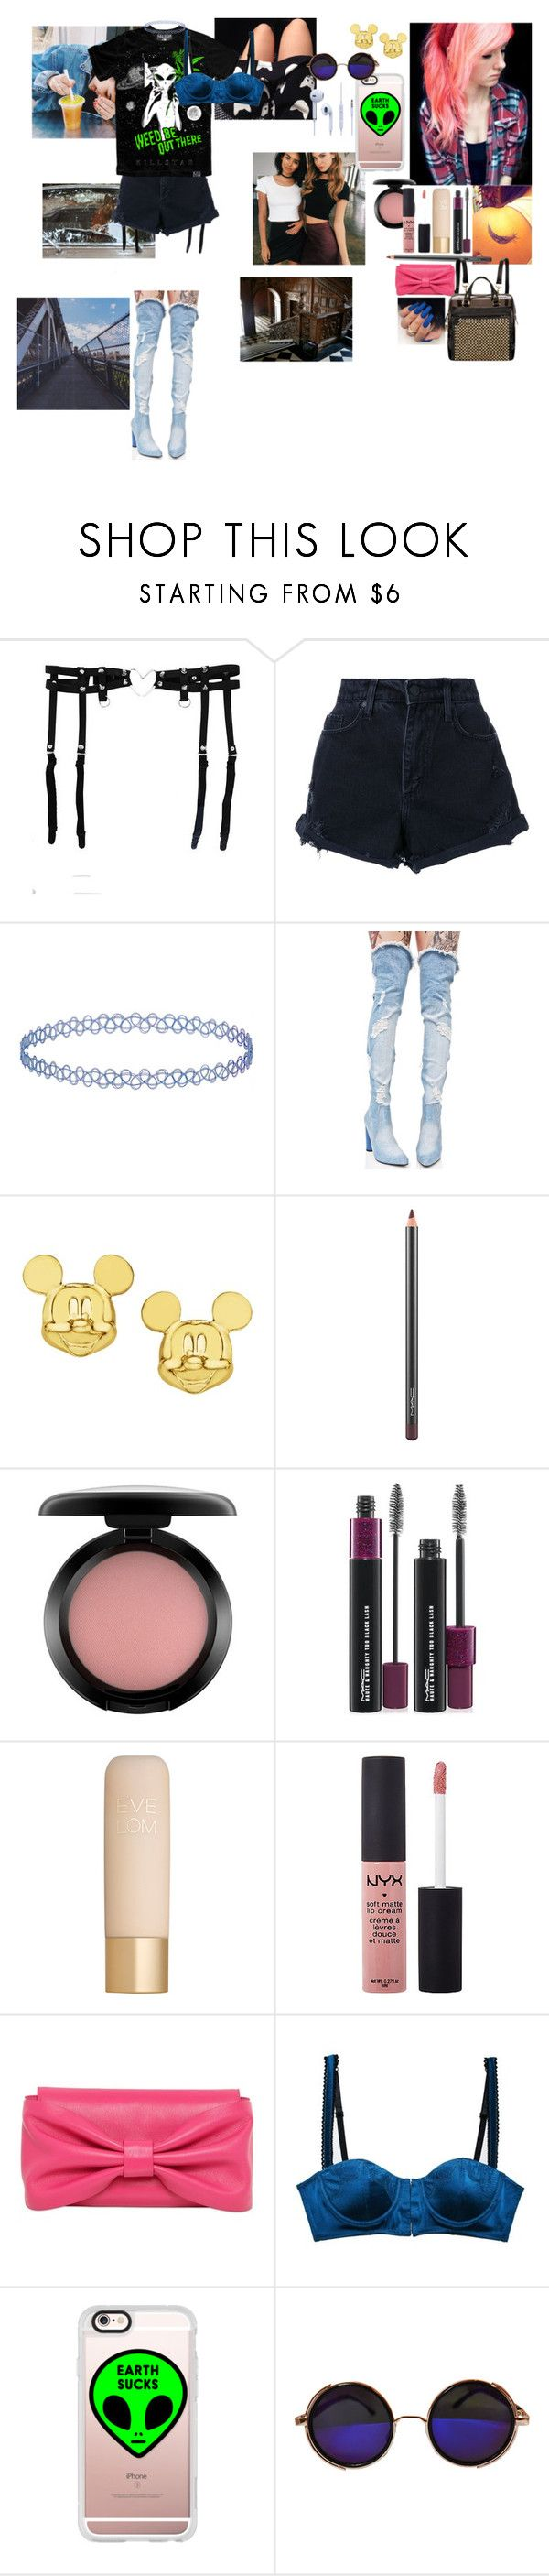 """""""Mike WiLL Made-It"""" by gabylina ❤ liked on Polyvore featuring Gucci, Nobody Denim, Topshop, Cape Robbin, Disney, MAC Cosmetics, Carmella, Eve Lom, NYX and RED Valentino"""